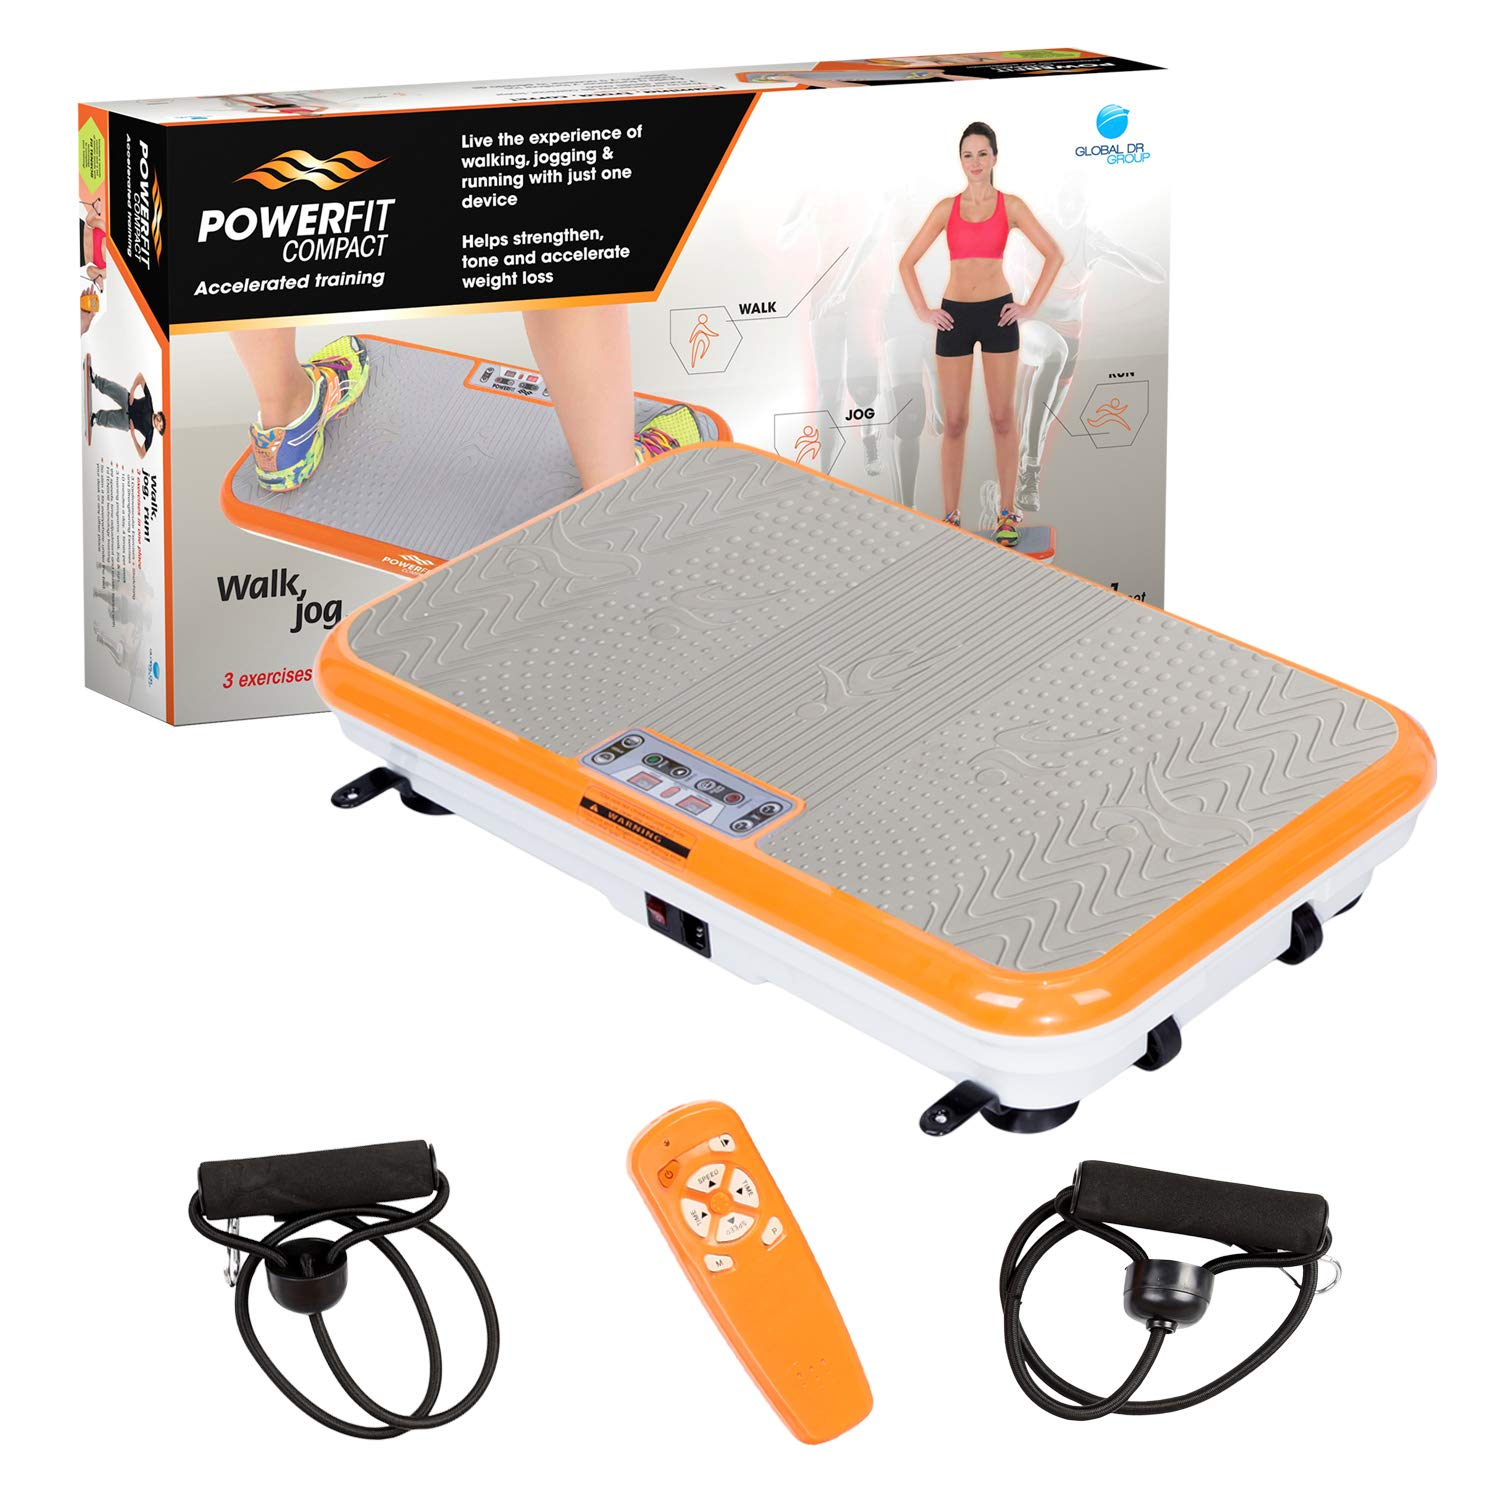 Power Fit Whole Body Vibration Exercise Platform - Home Workout Vibrating Step Equipment by Power Fit (Image #3)